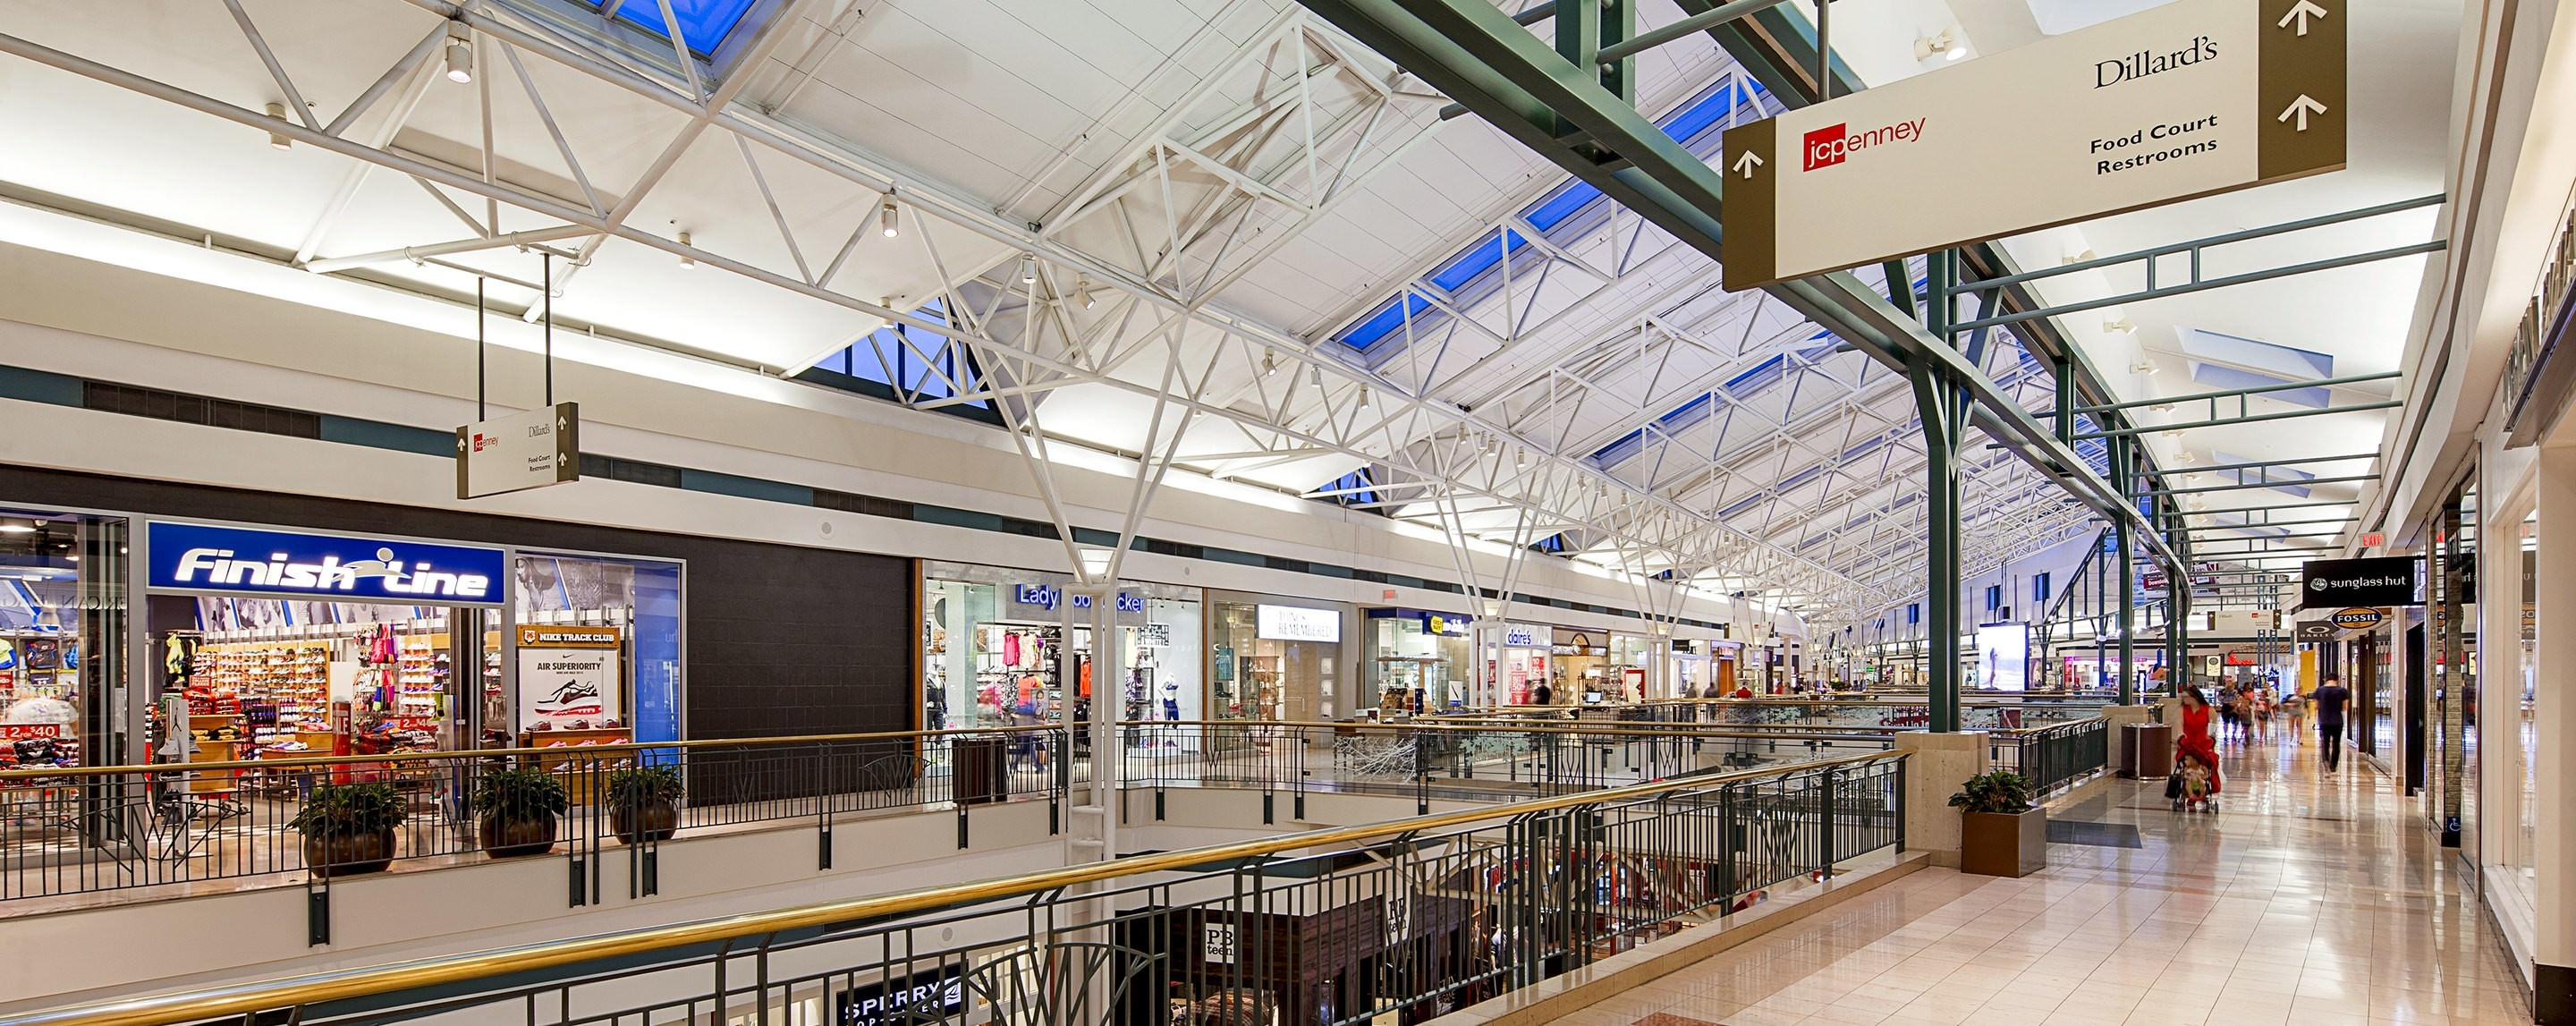 The Woodlands Mall image 2